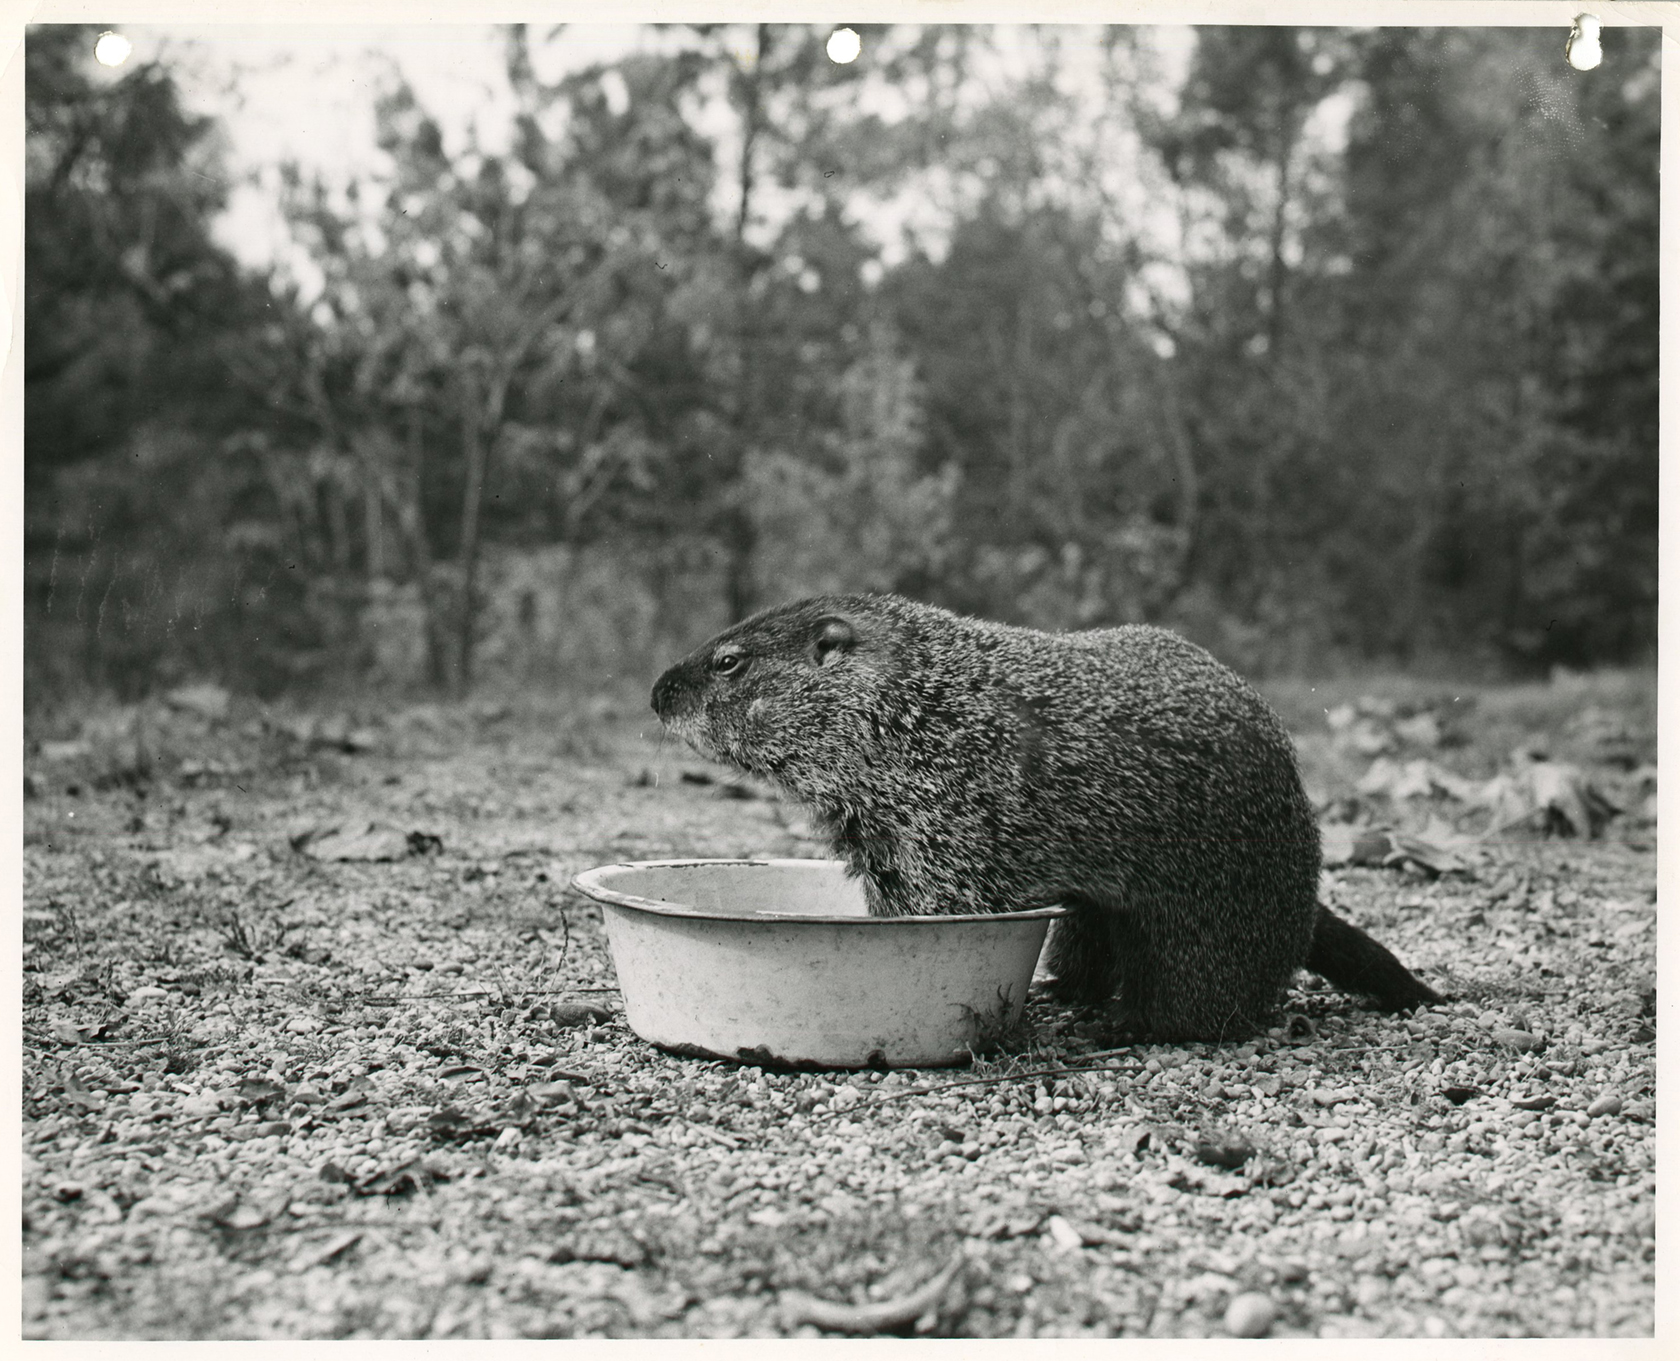 Black and white photograph of a groundhog sitting in a pan